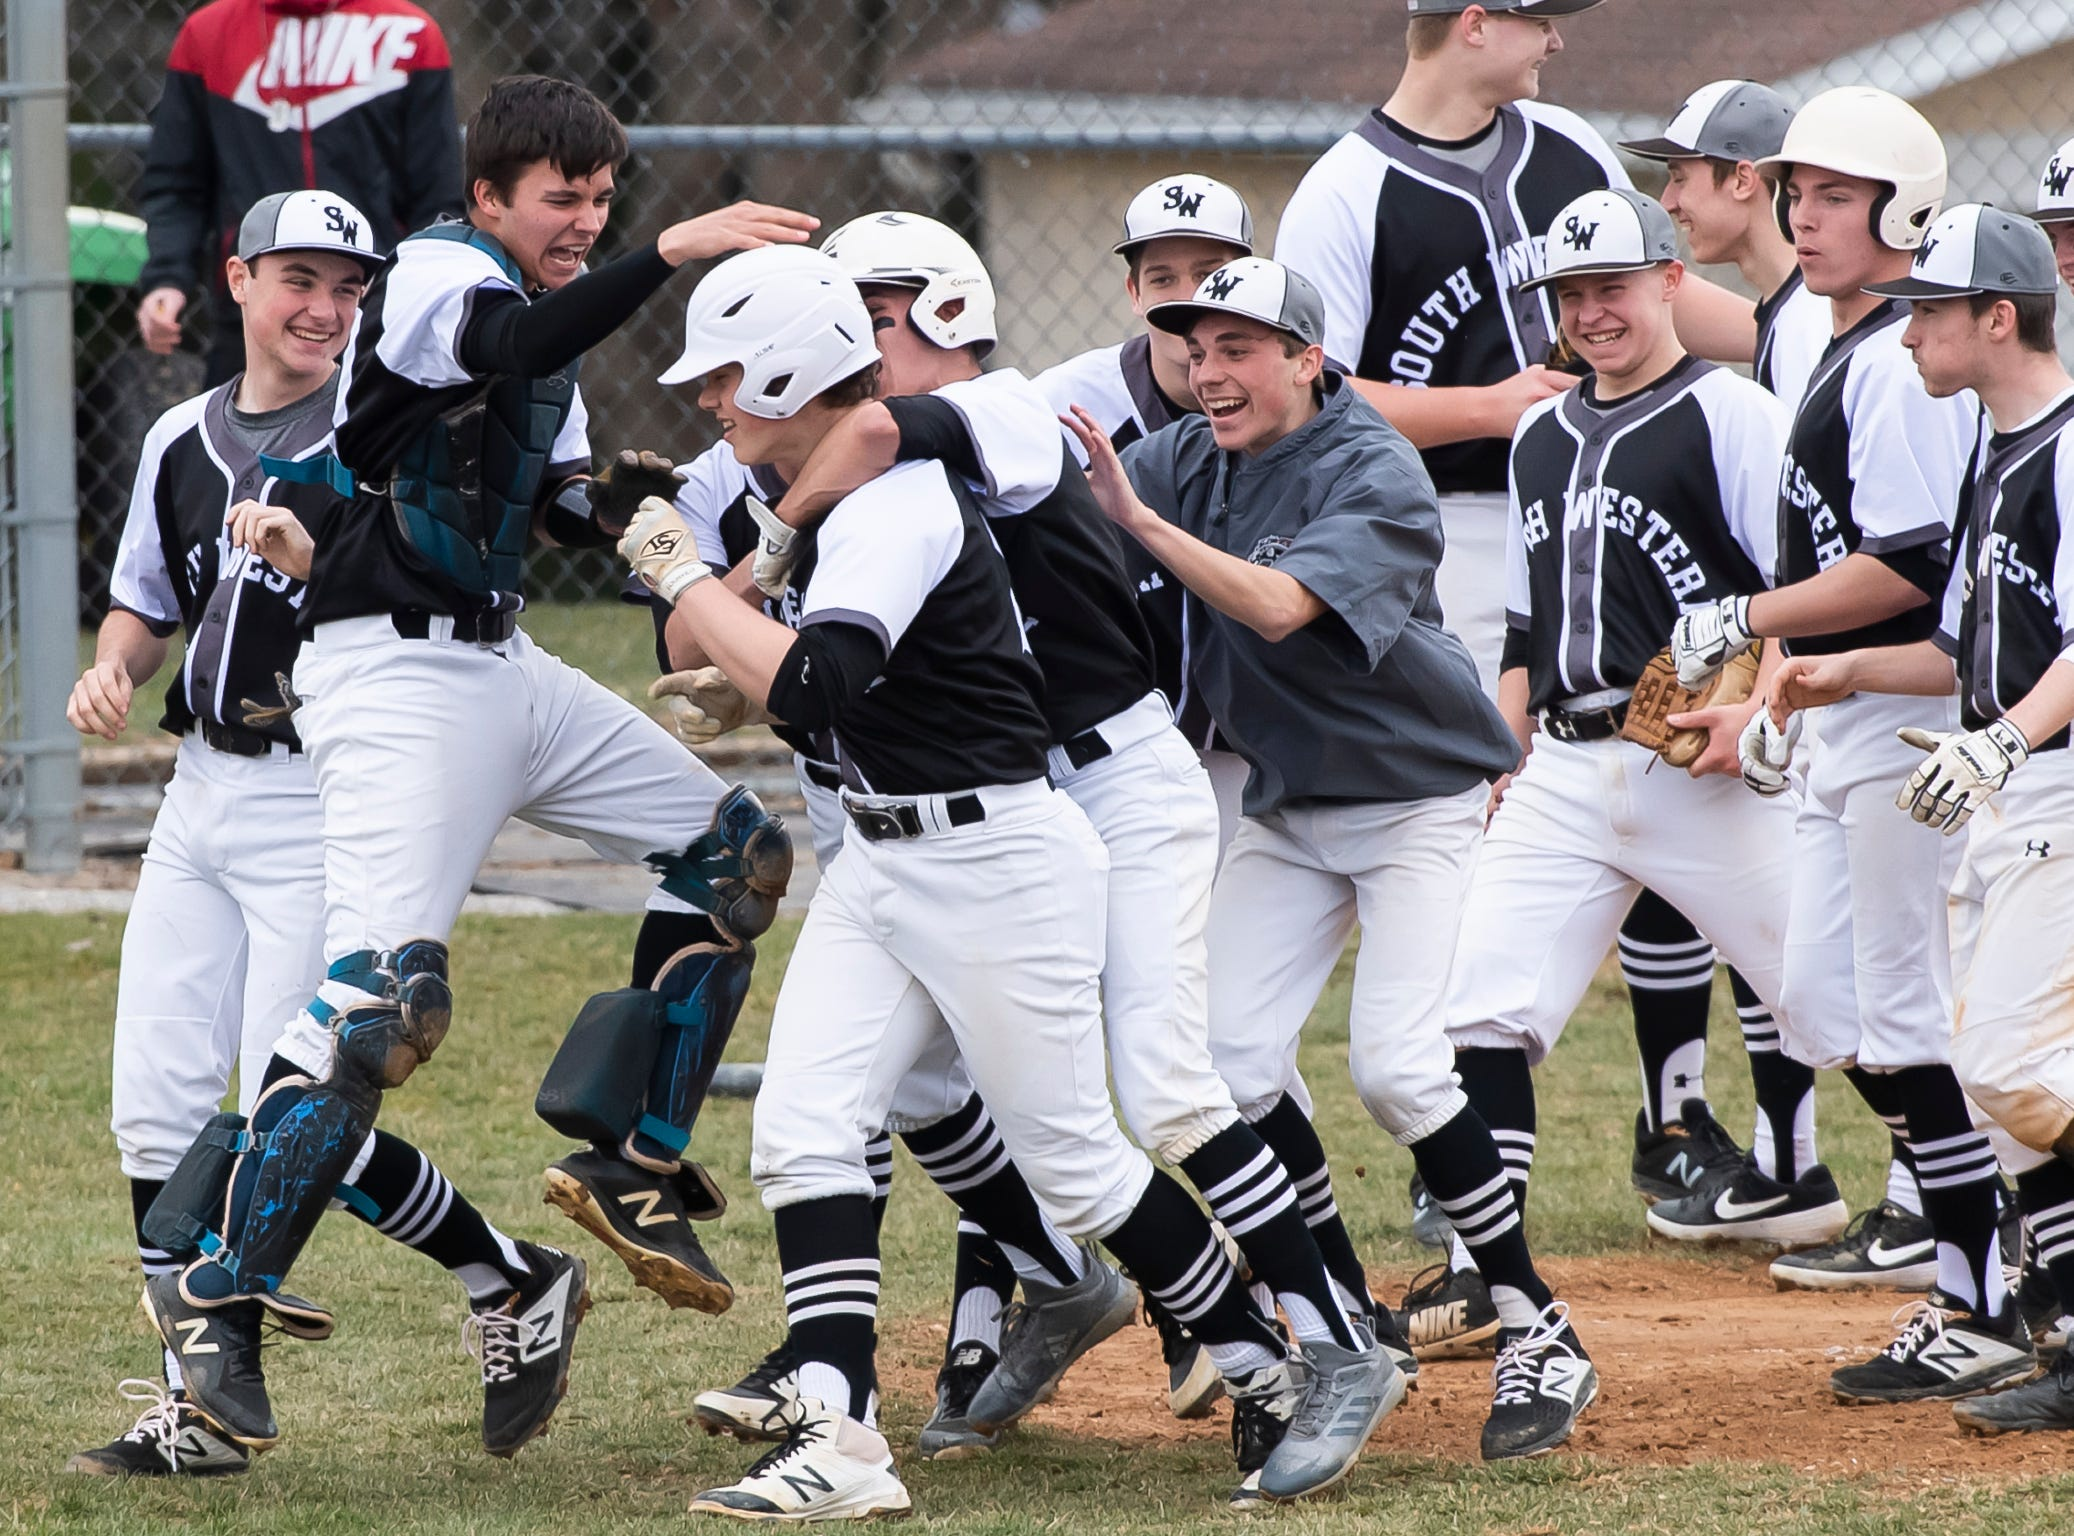 South Western's Ty Cromer (4) is mobbed by his teammates at home plate after hitting a 3-run homer against Carlisle in Hanover on Friday, March 29, 2019. The Mustangs won 11-9.